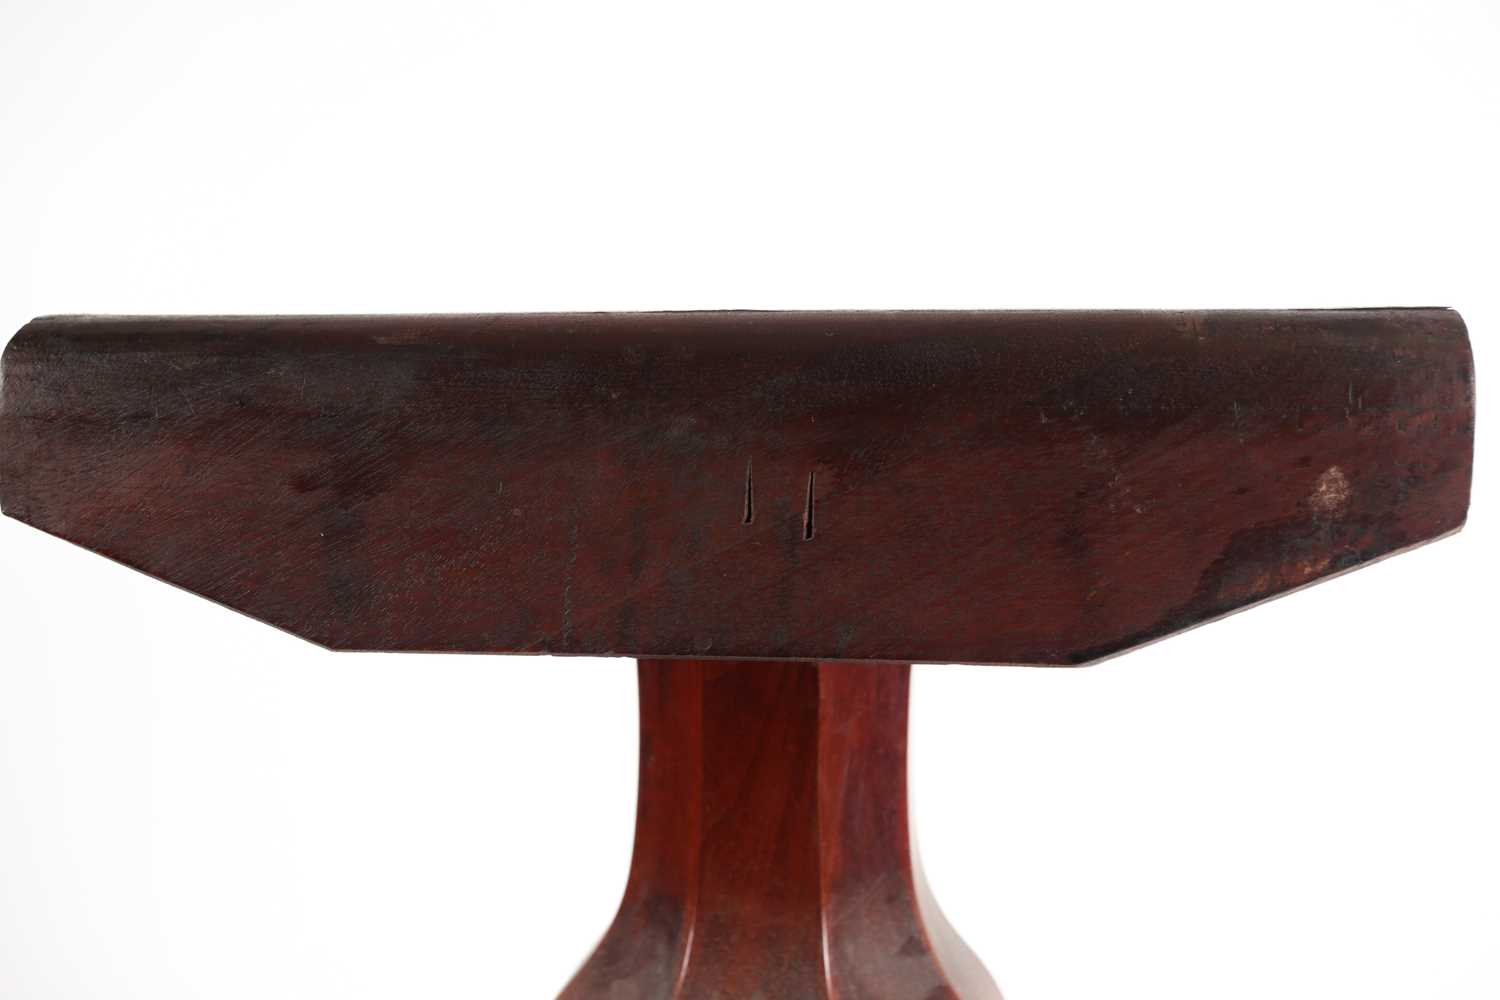 A Victorian mahogany circular flip-top breakfast table. With a carved tripod base. 120 cm diameter x - Image 4 of 6